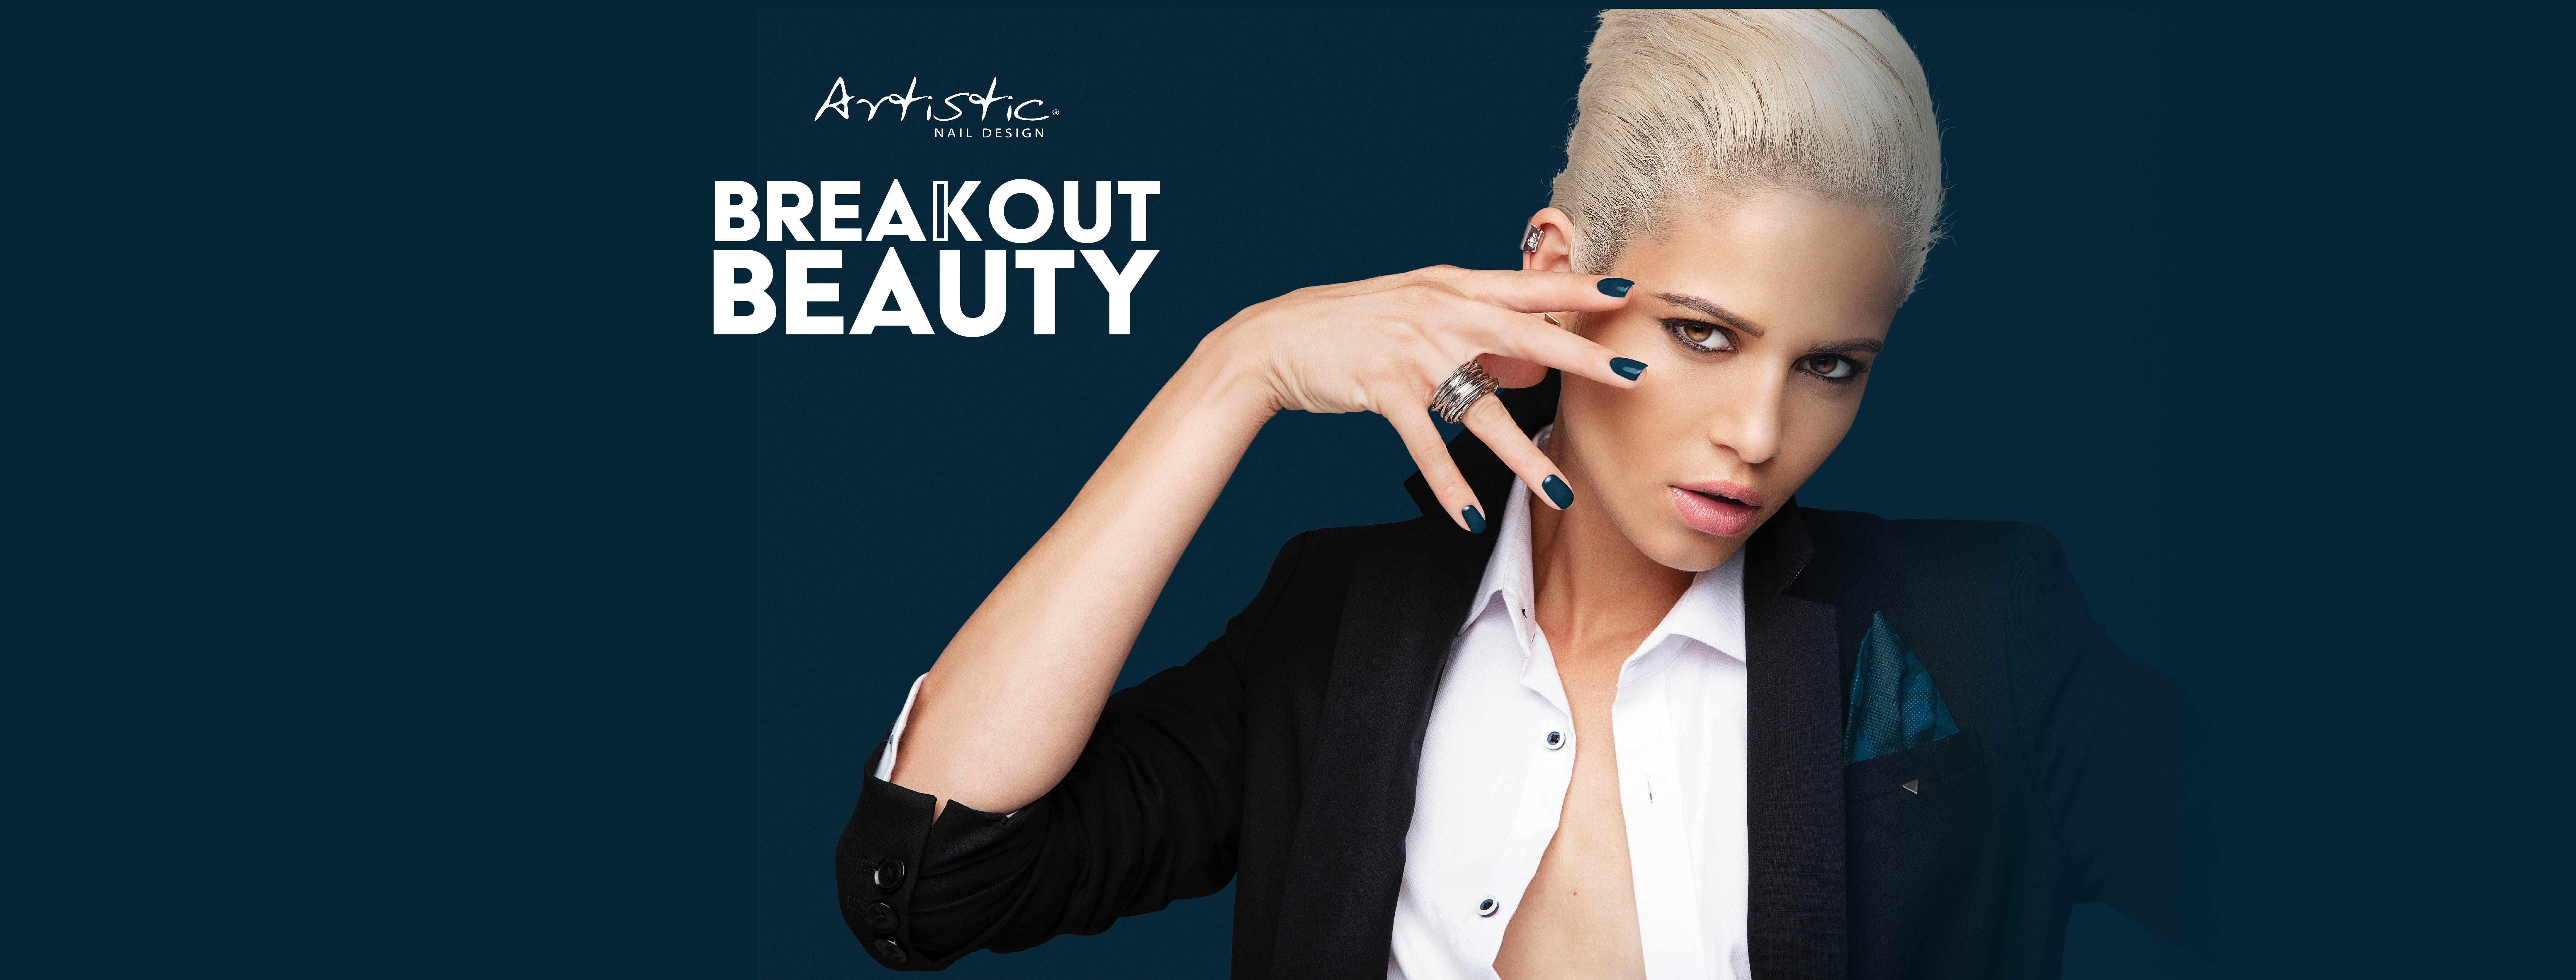 Introducing Artistic Fall 2021 Collection - Breakout Beauty